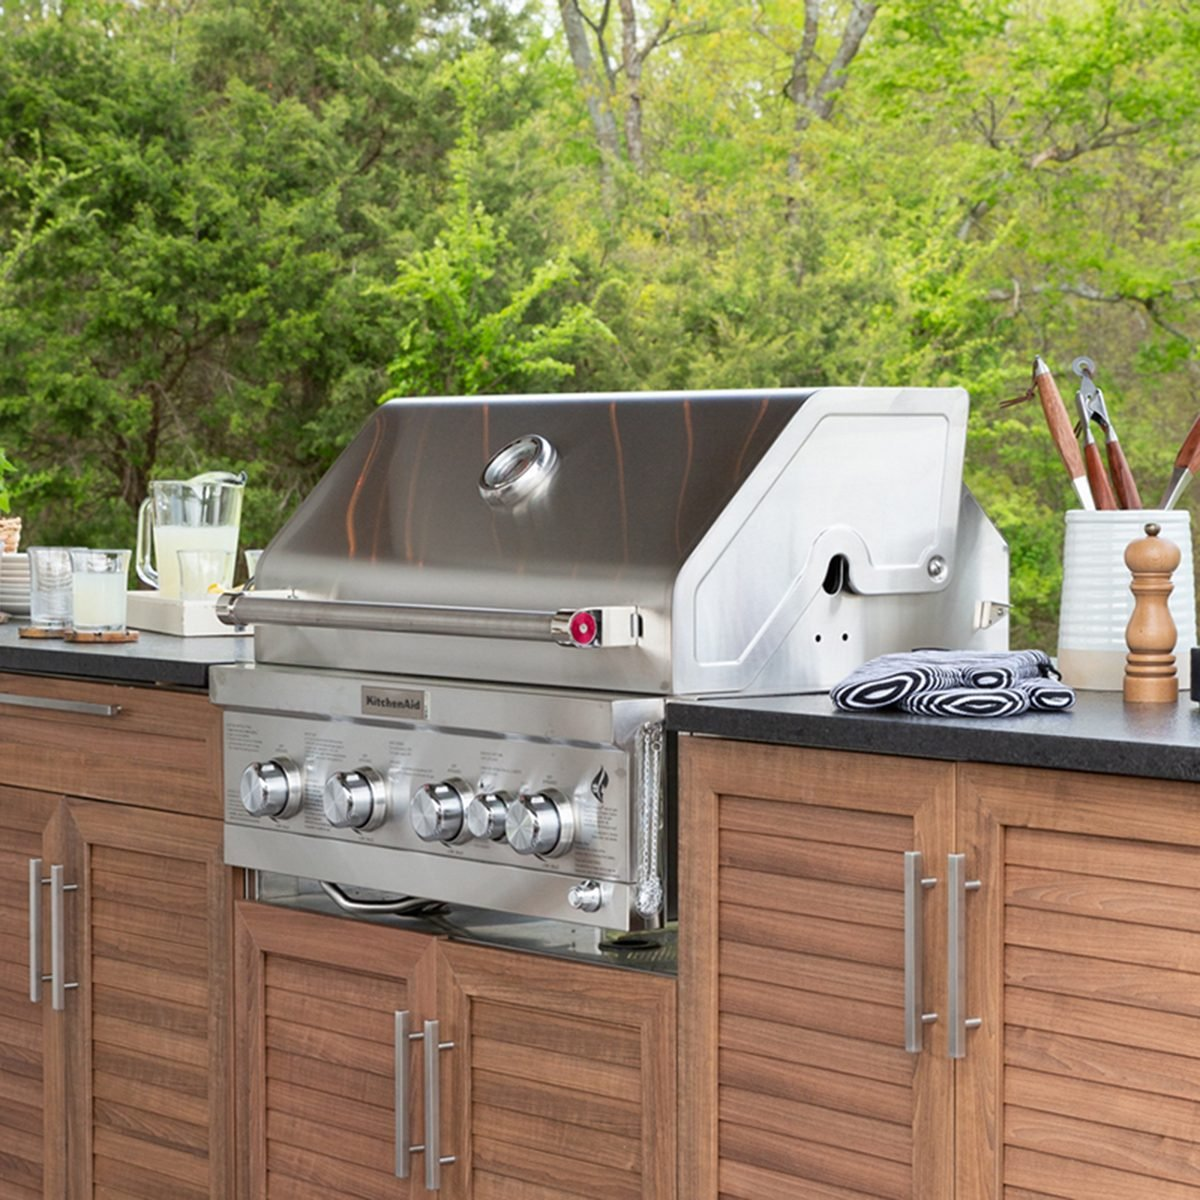 In-cabinet KitchenAid grill at the Shed